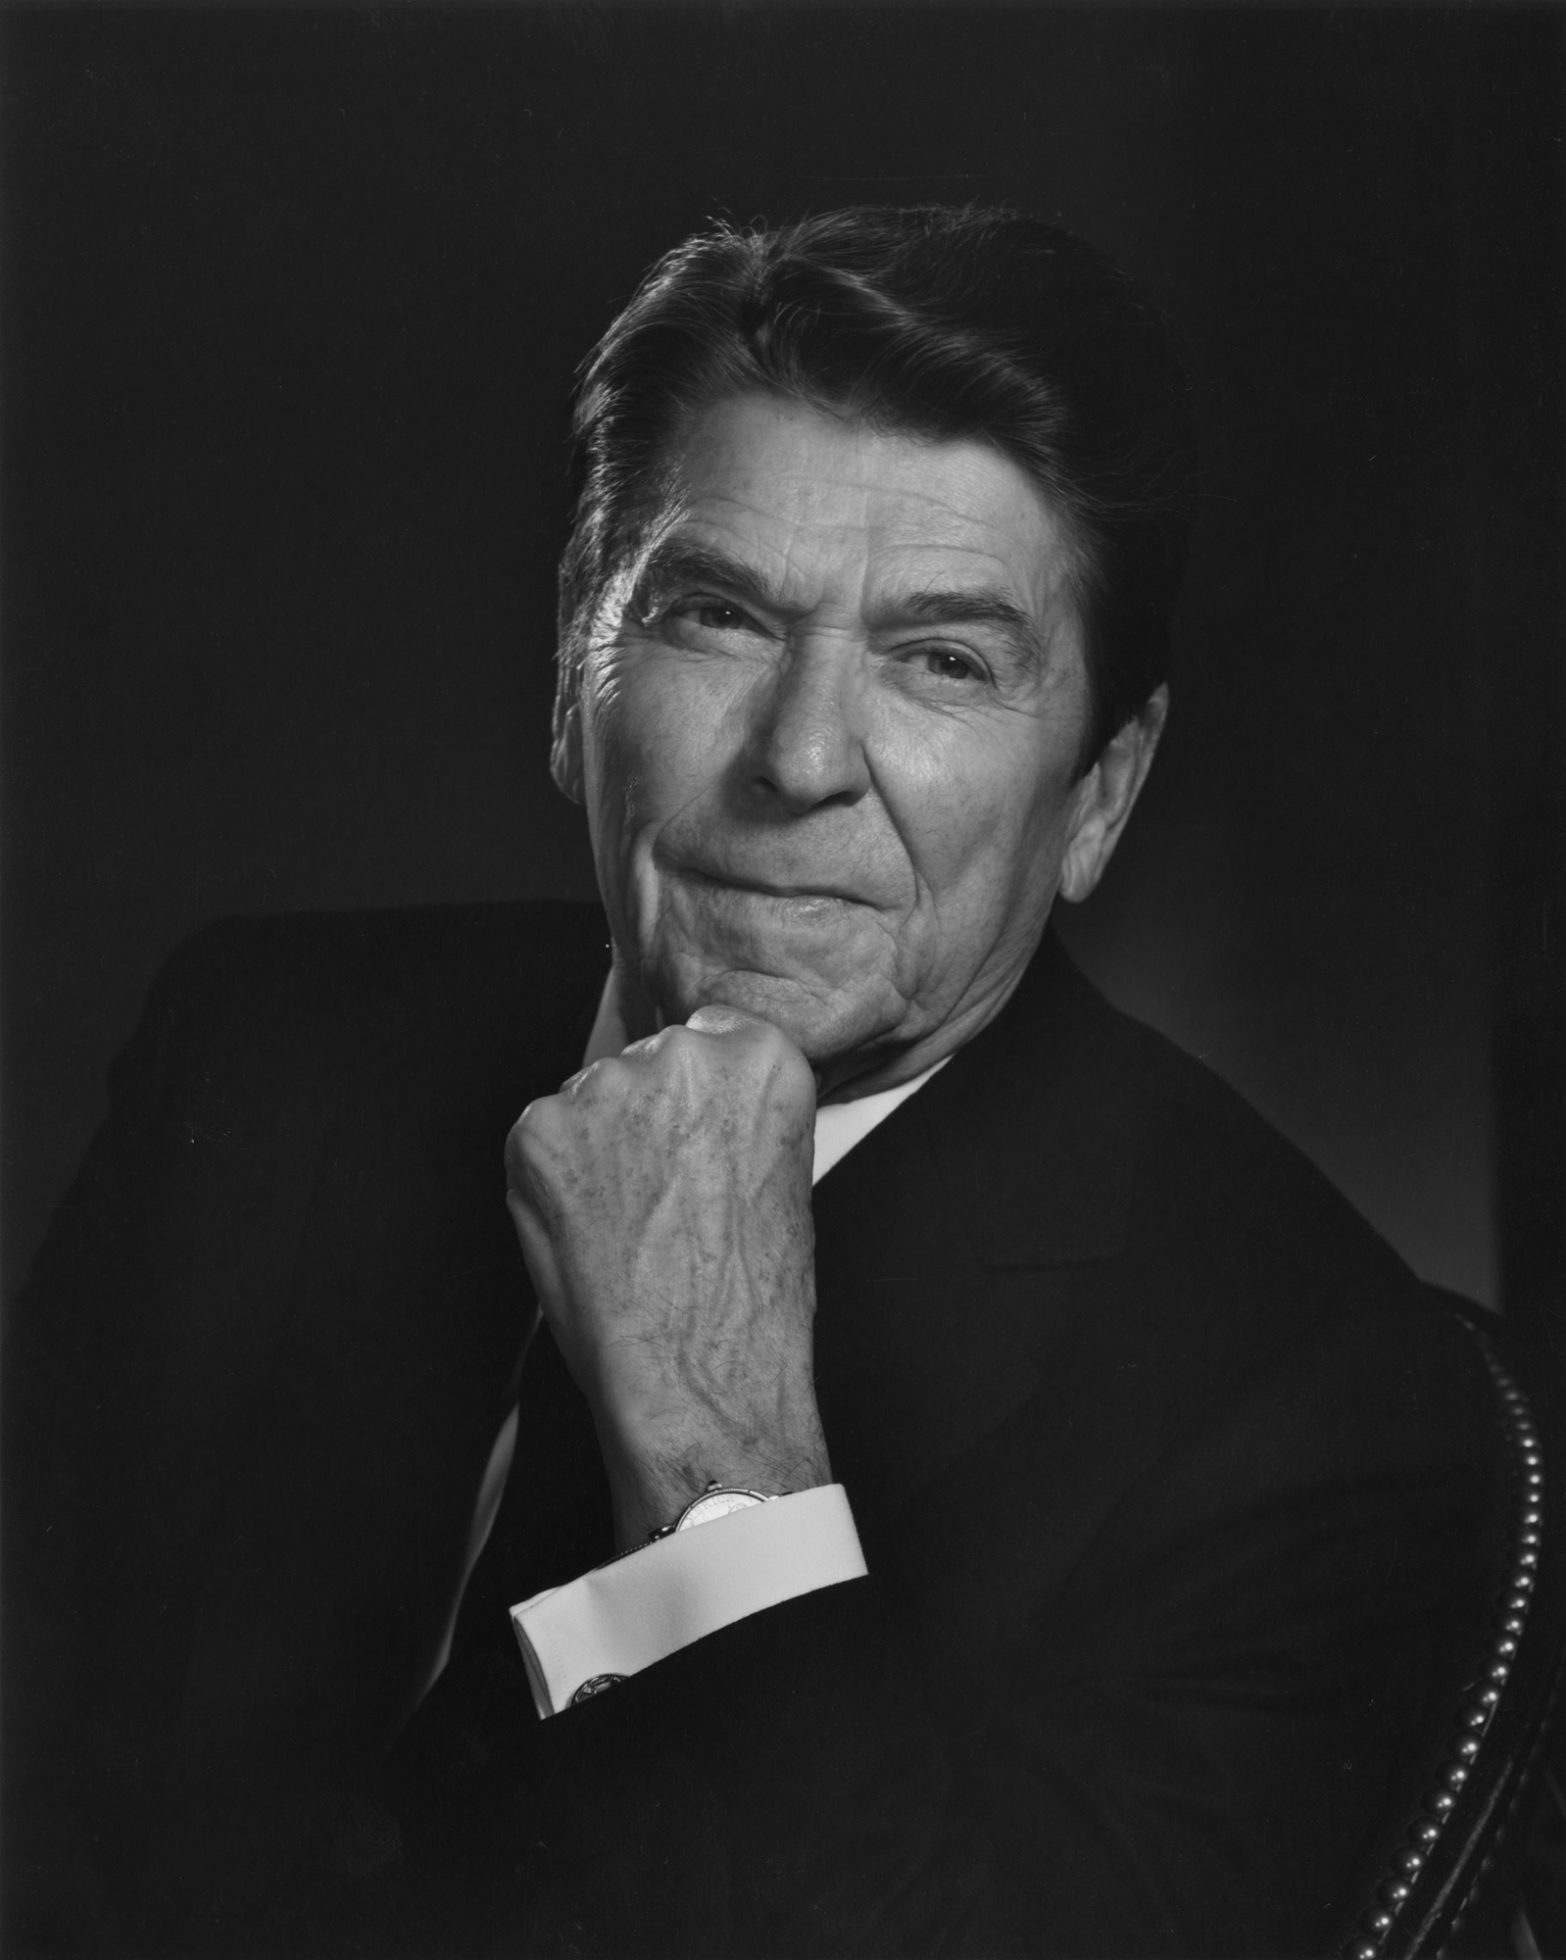 an overview of the role of ronald reagan as a president of the united states Jimmy carter was president of the united states before ronald reagan carter was a democrat and served between 1977 and 1981 reaganomics was a supply-side, or ''trickle-down'', economic approach.